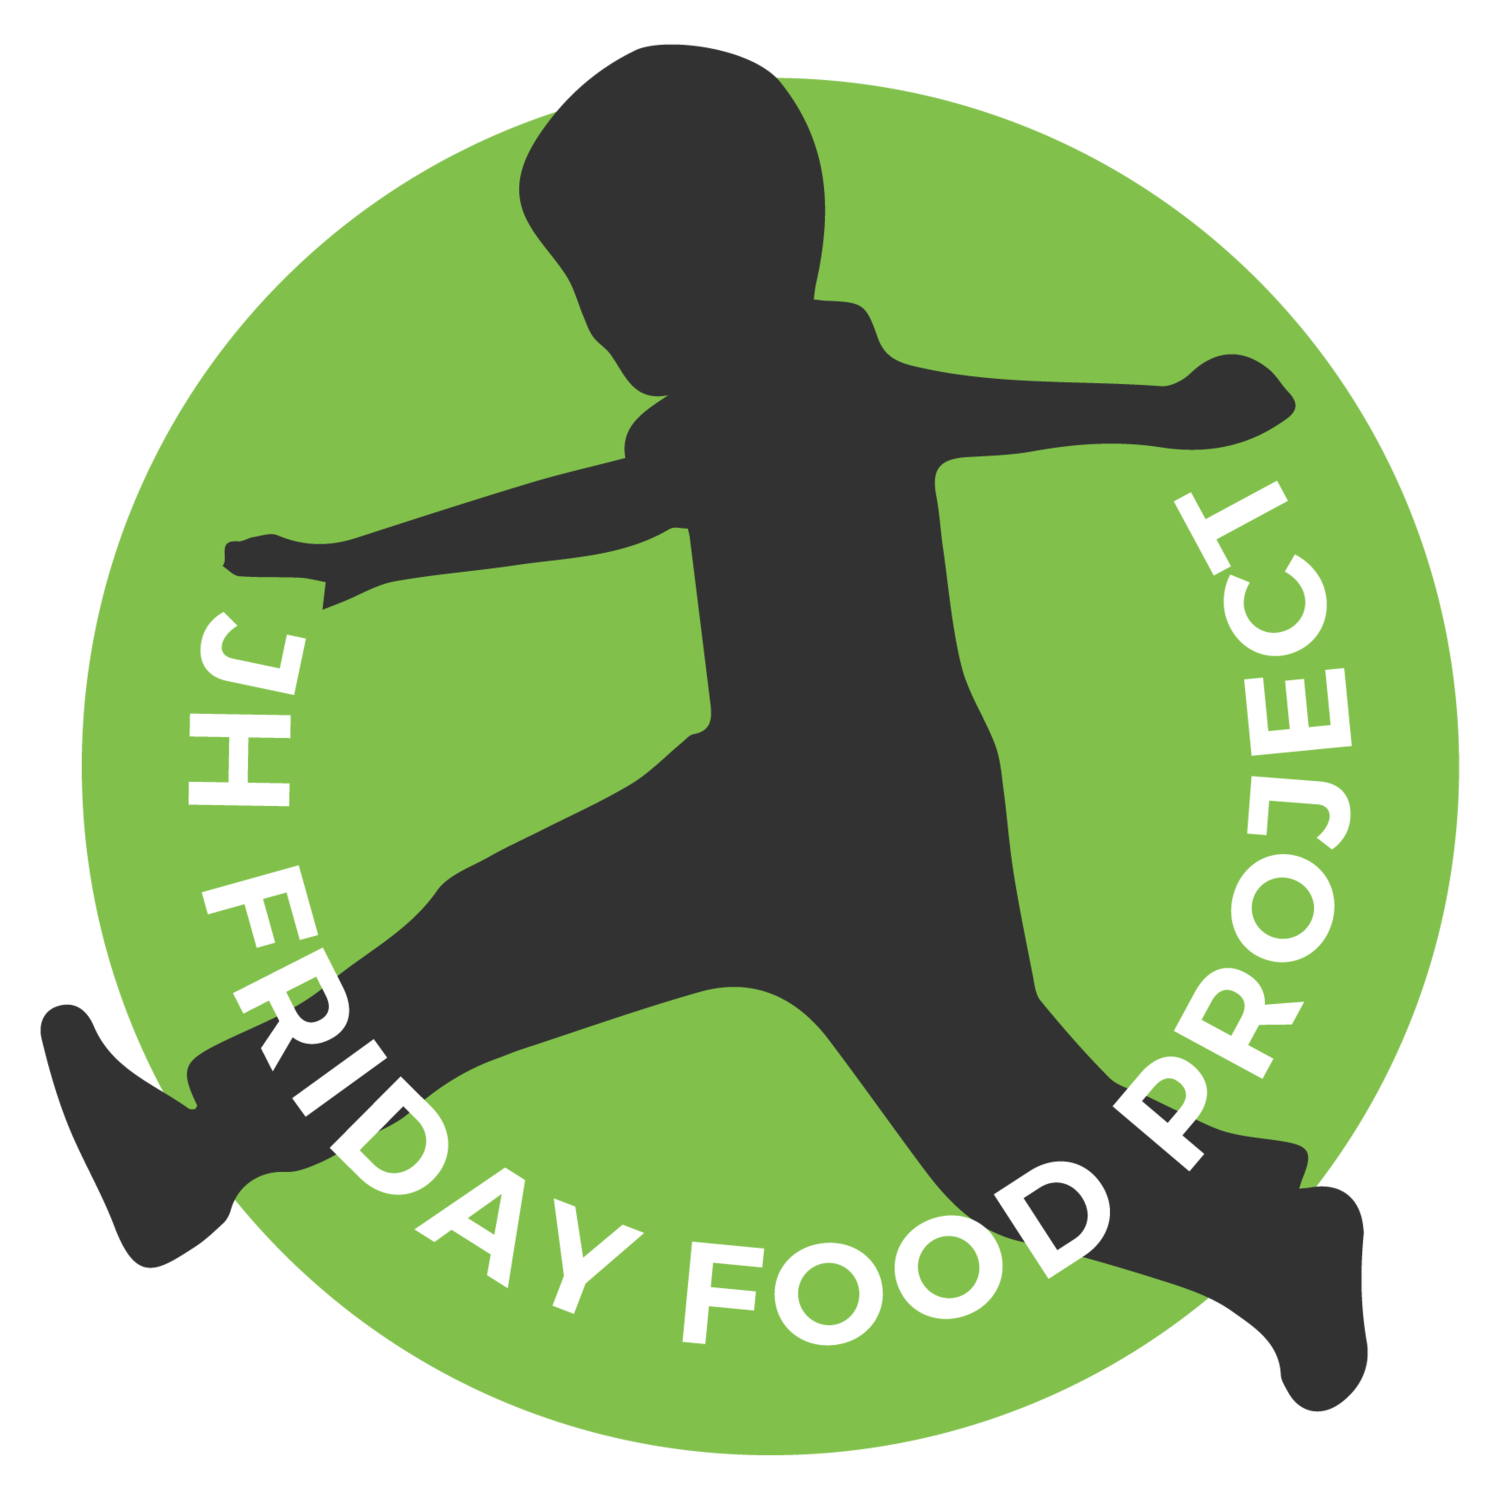 Community clipart social involvement. Jh friday food project